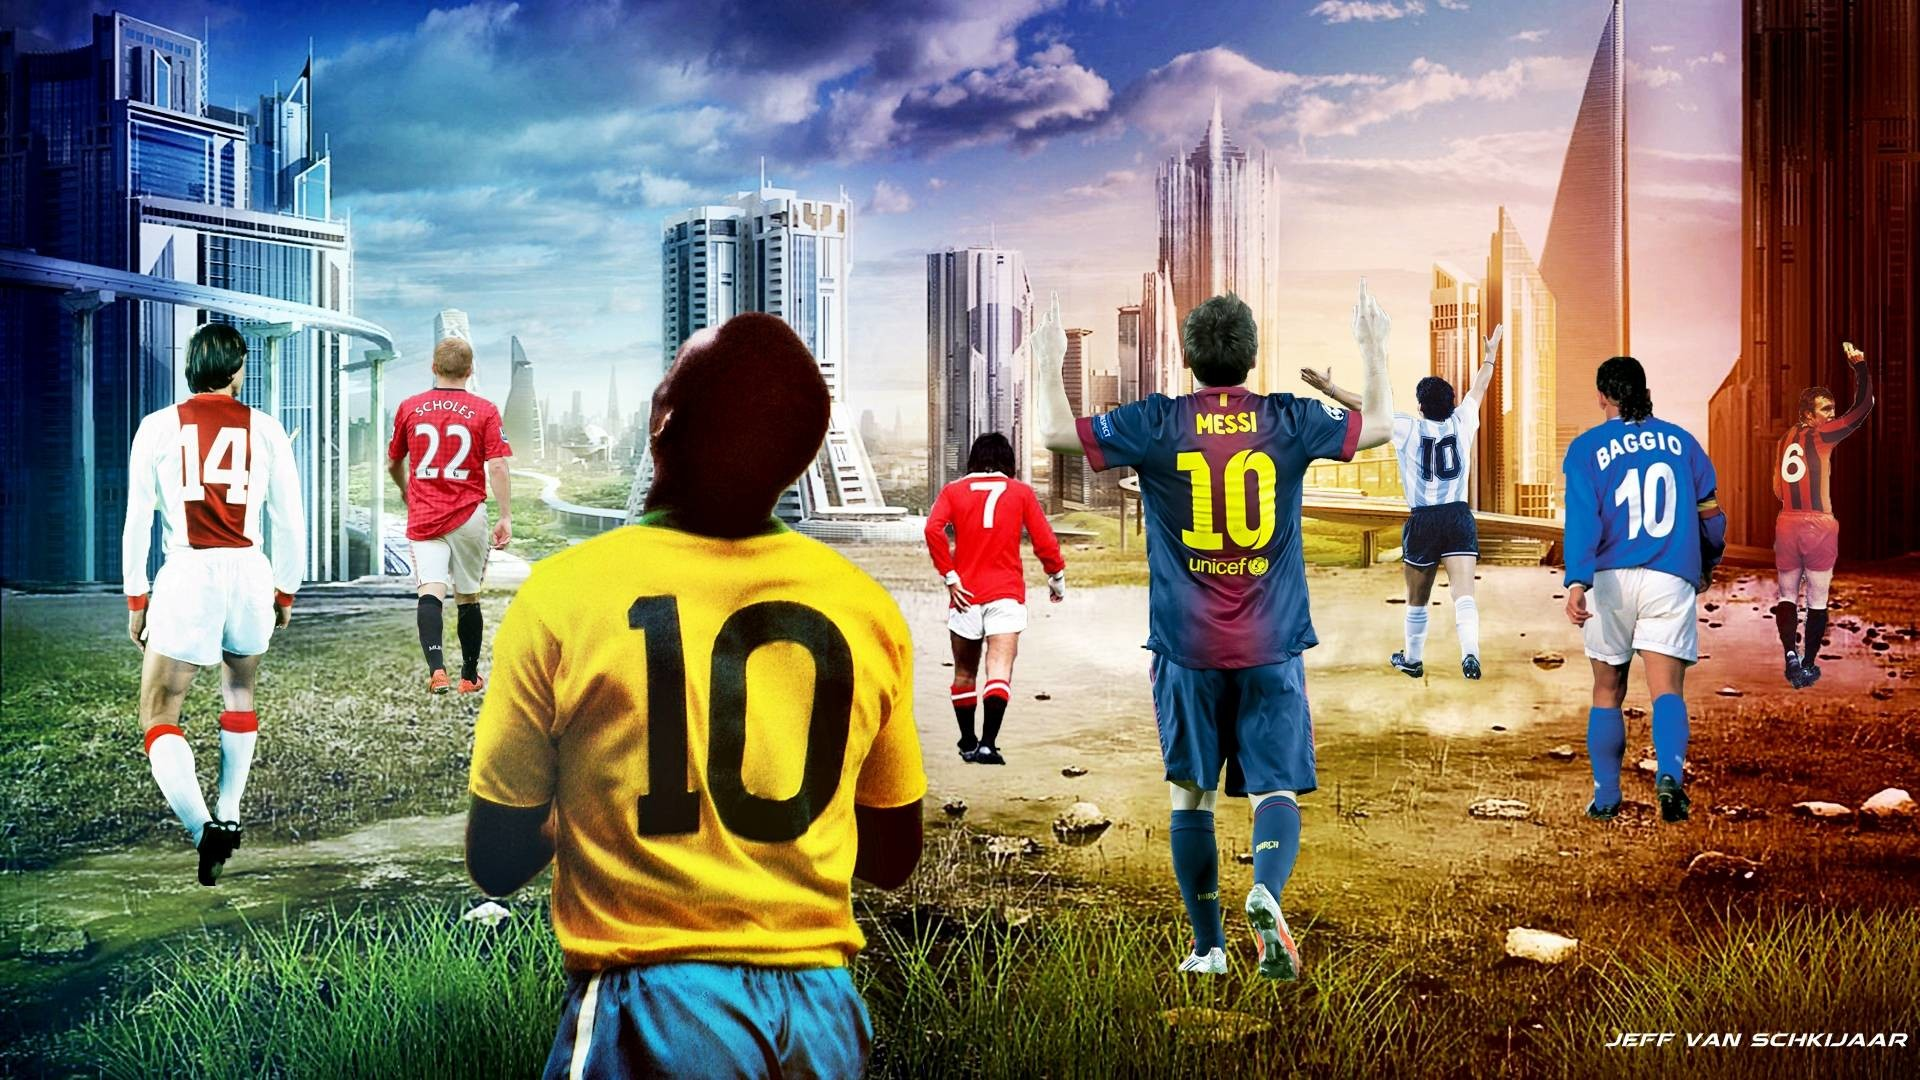 Best Football Players Of All Time Wallpaper by jeffery10 on DeviantArt